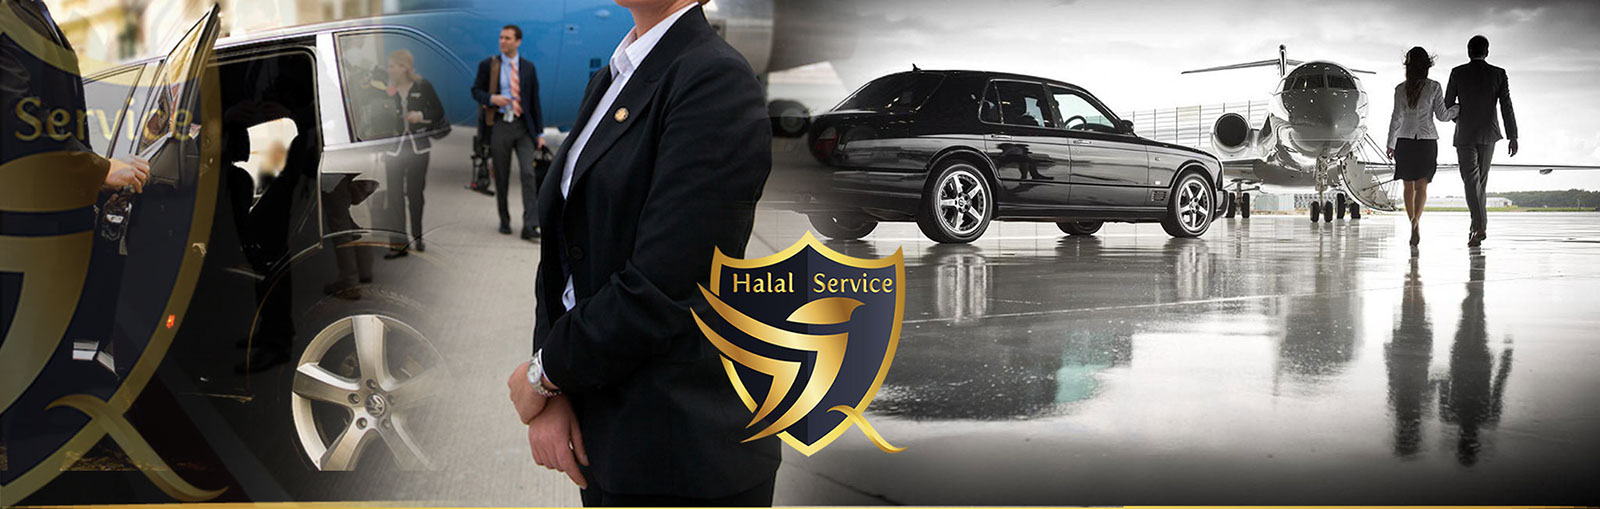 Turnkey Halal Security and Accompaniment. HALAL SERVICE - HS.